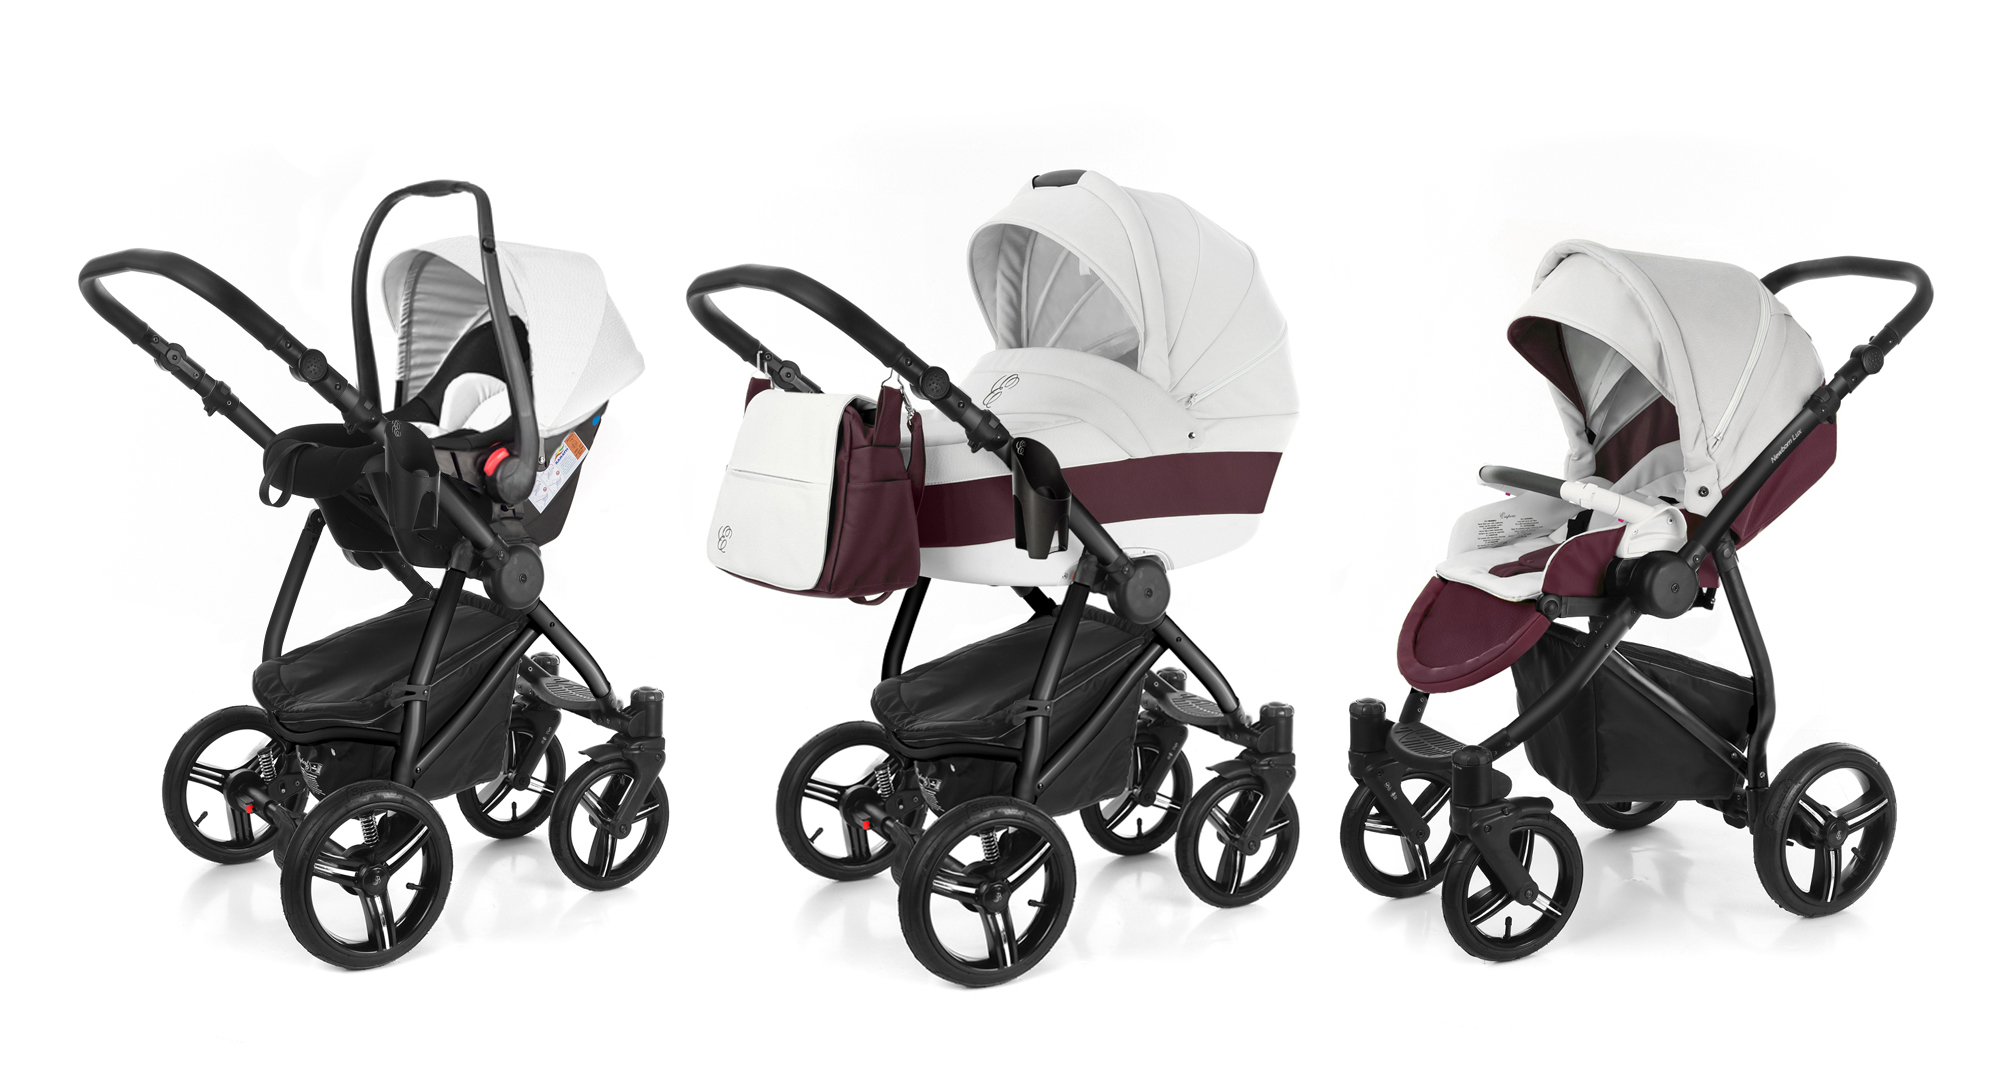 Коляска 3 в 1 Esspero Grand Newborn Lux (шасси Black). Фото N5